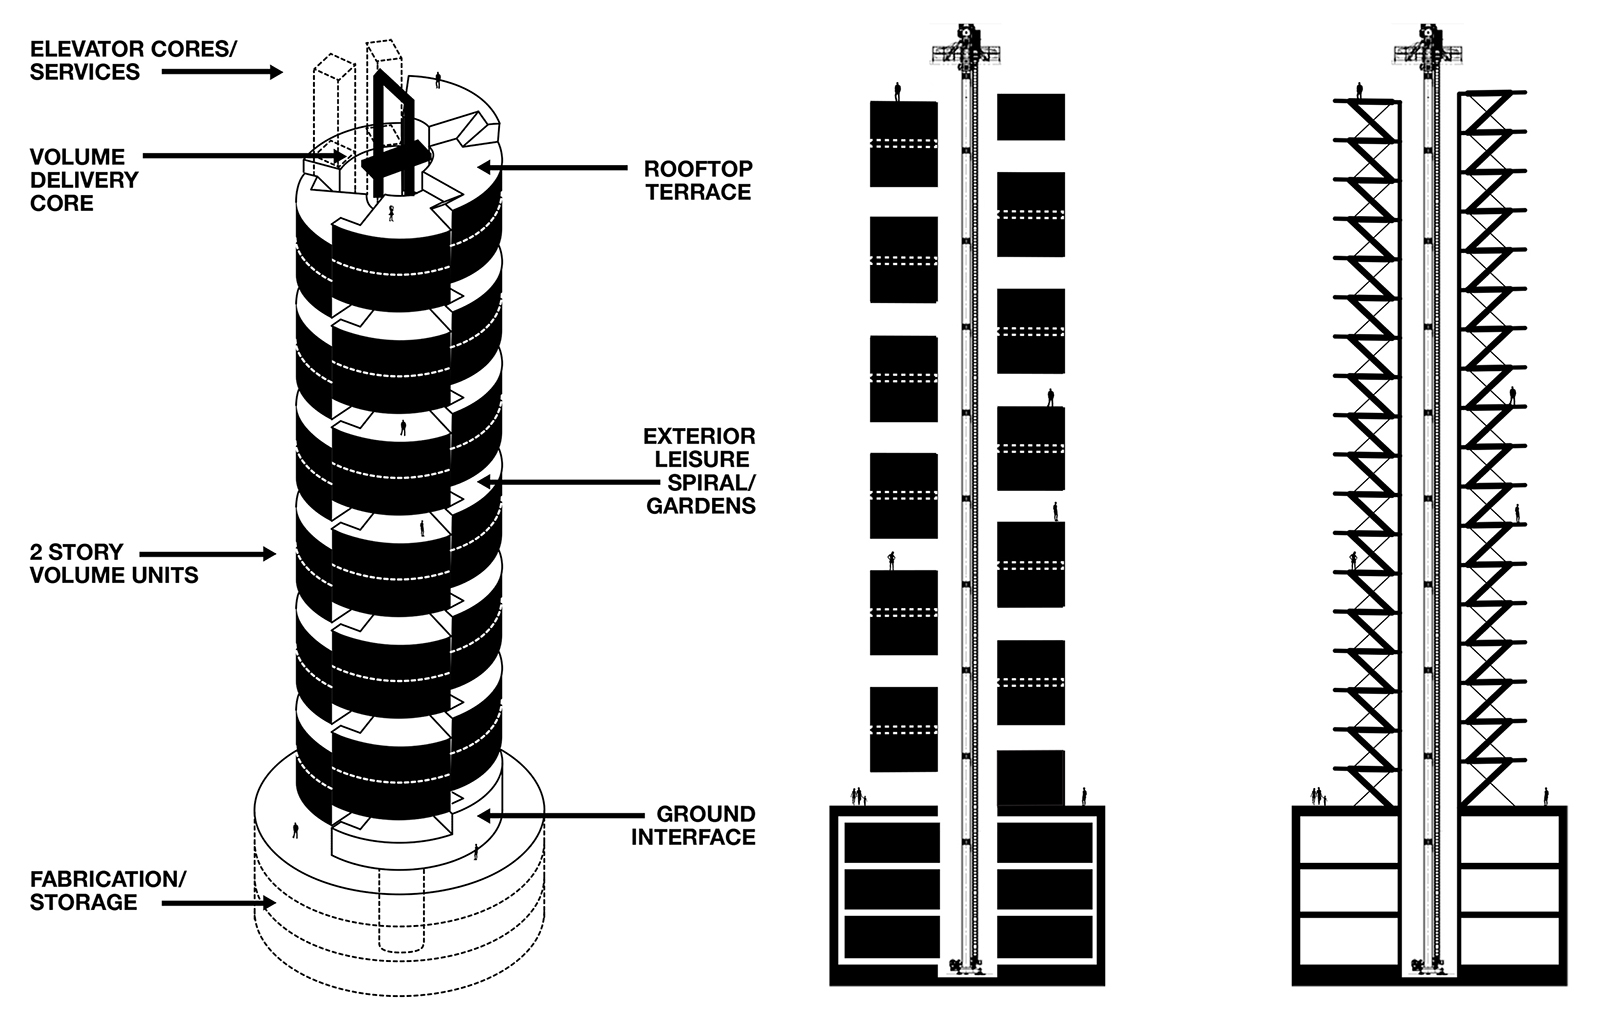 Series of diagrams illustrating the relationship between the unit volumes, the central shaft and the FVDC structural system